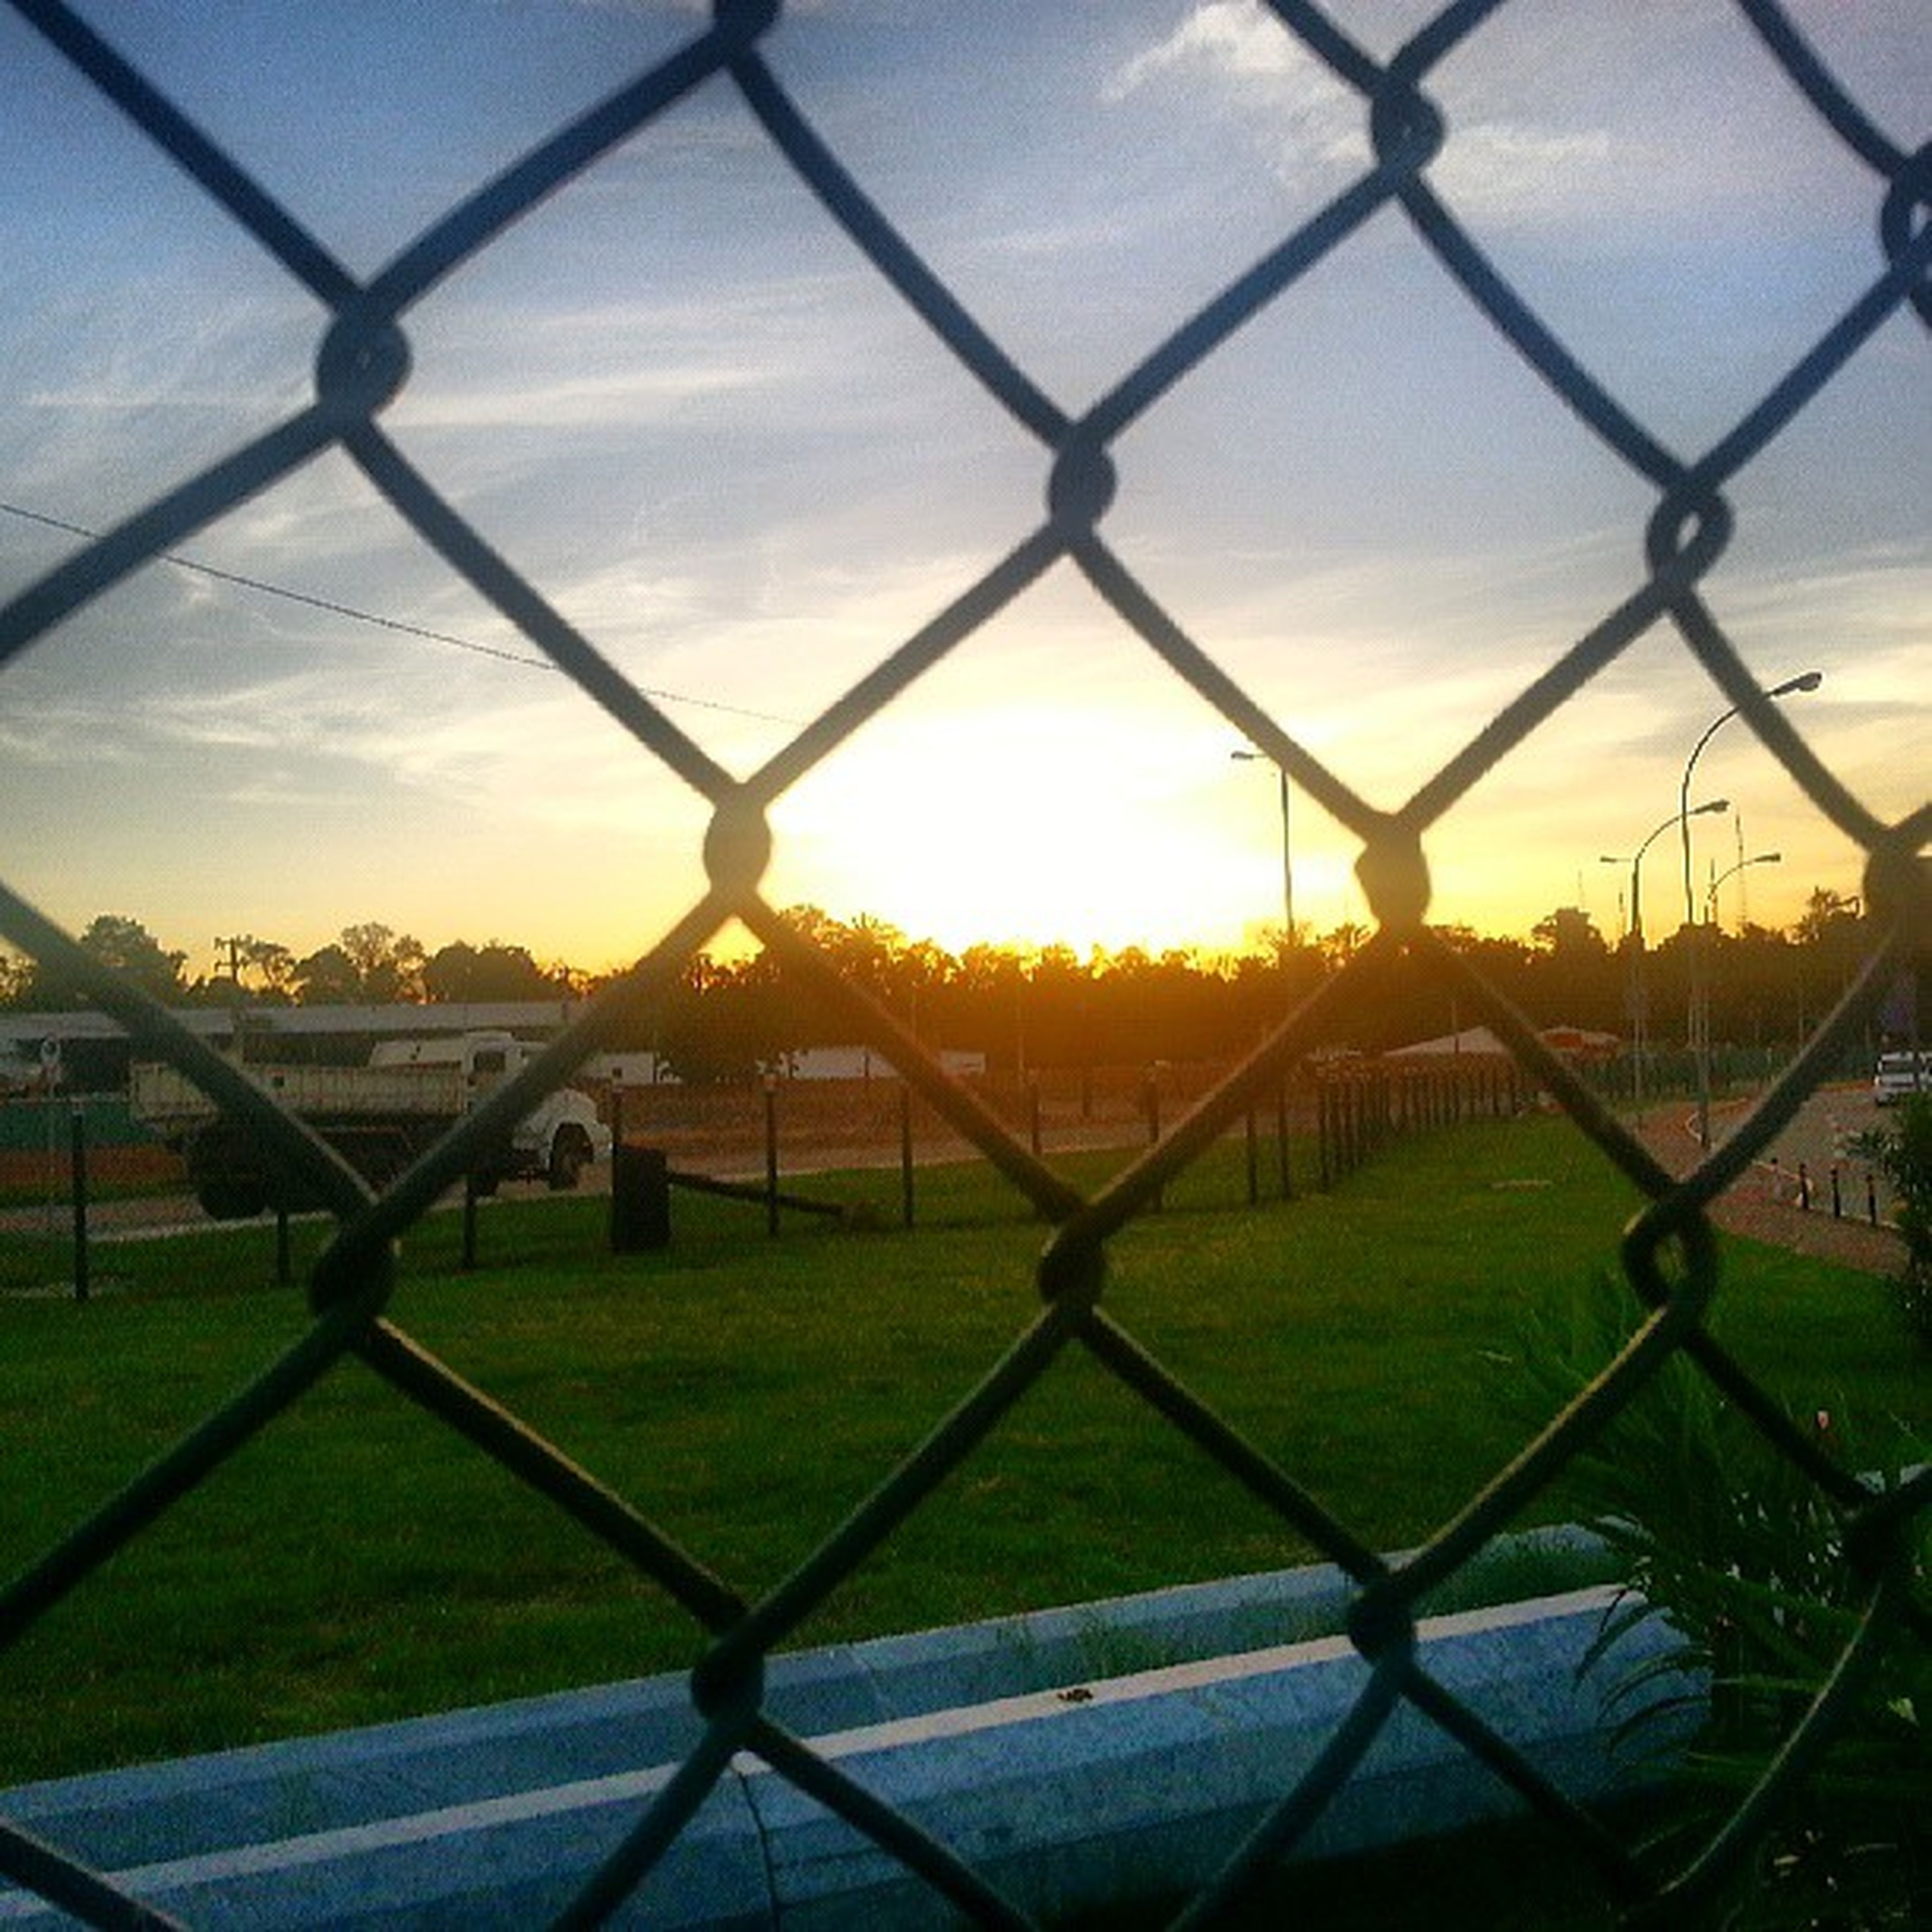 sunset, fence, chainlink fence, orange color, protection, safety, sky, field, sun, security, landscape, grass, metal, beauty in nature, tranquility, scenics, nature, tranquil scene, sunlight, no people